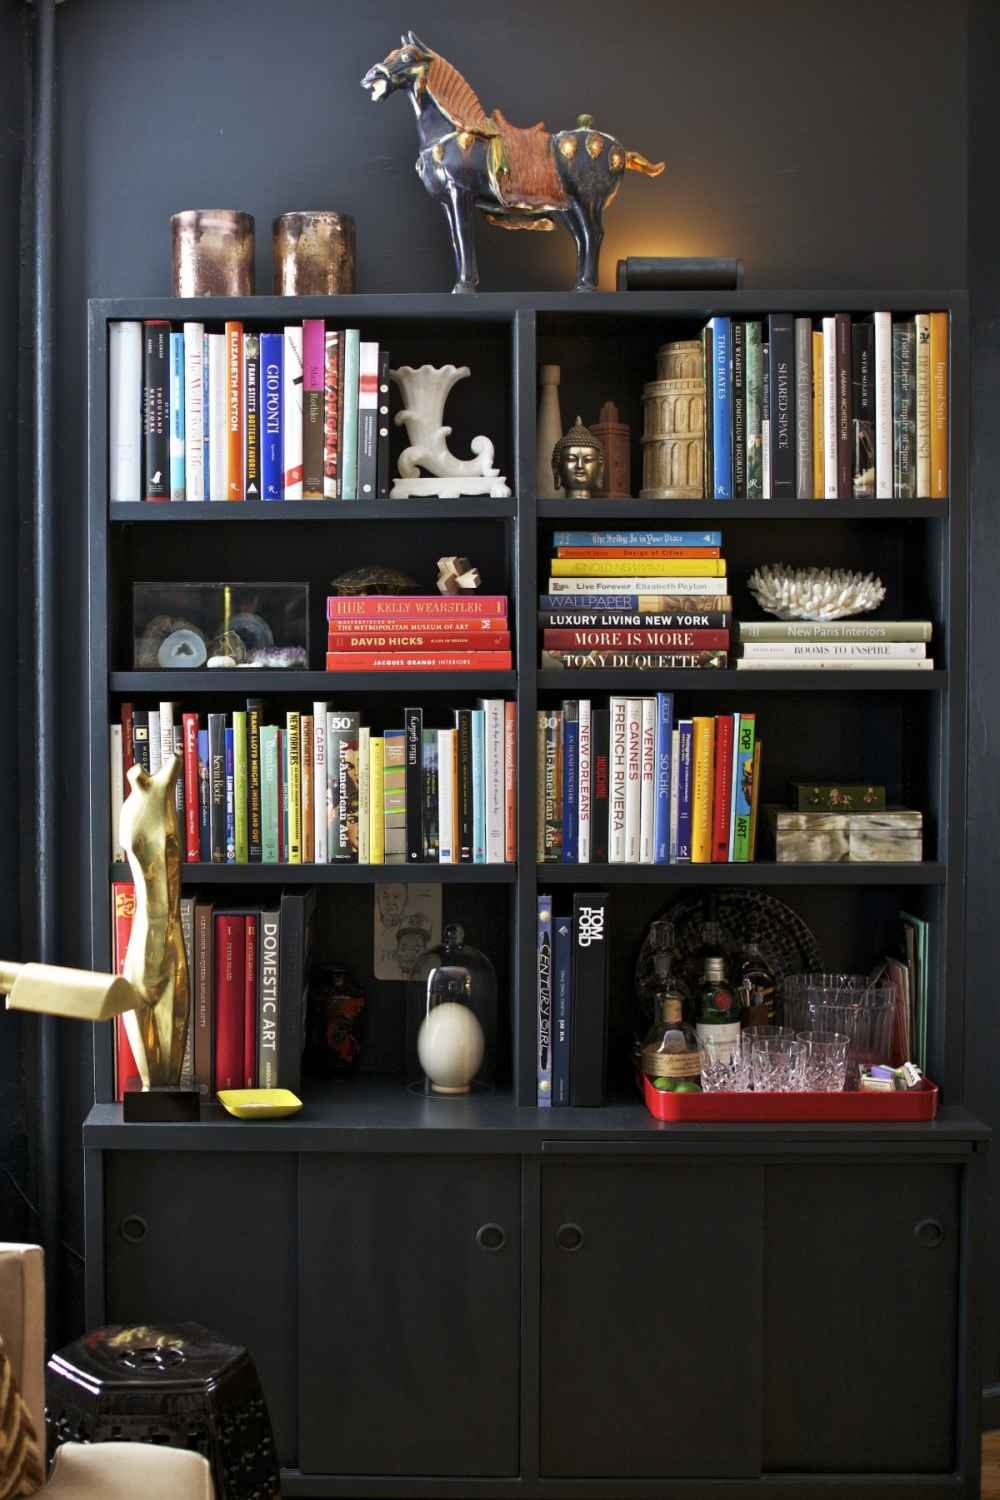 9 Space Saving Tips For Tiny NYC Apartments